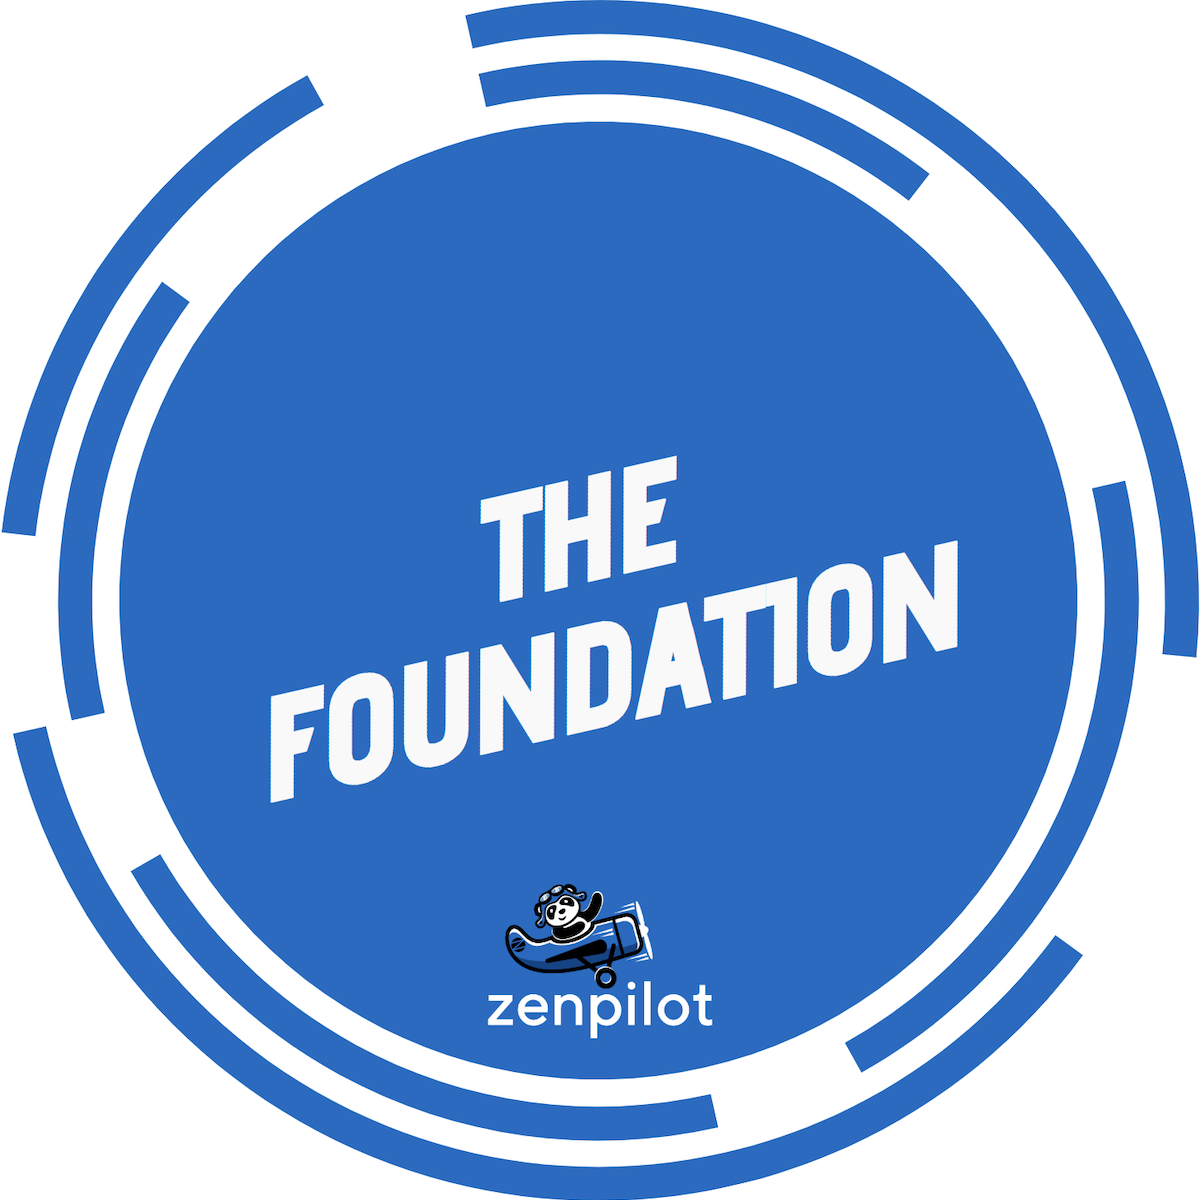 The Foundation - ZenPilot